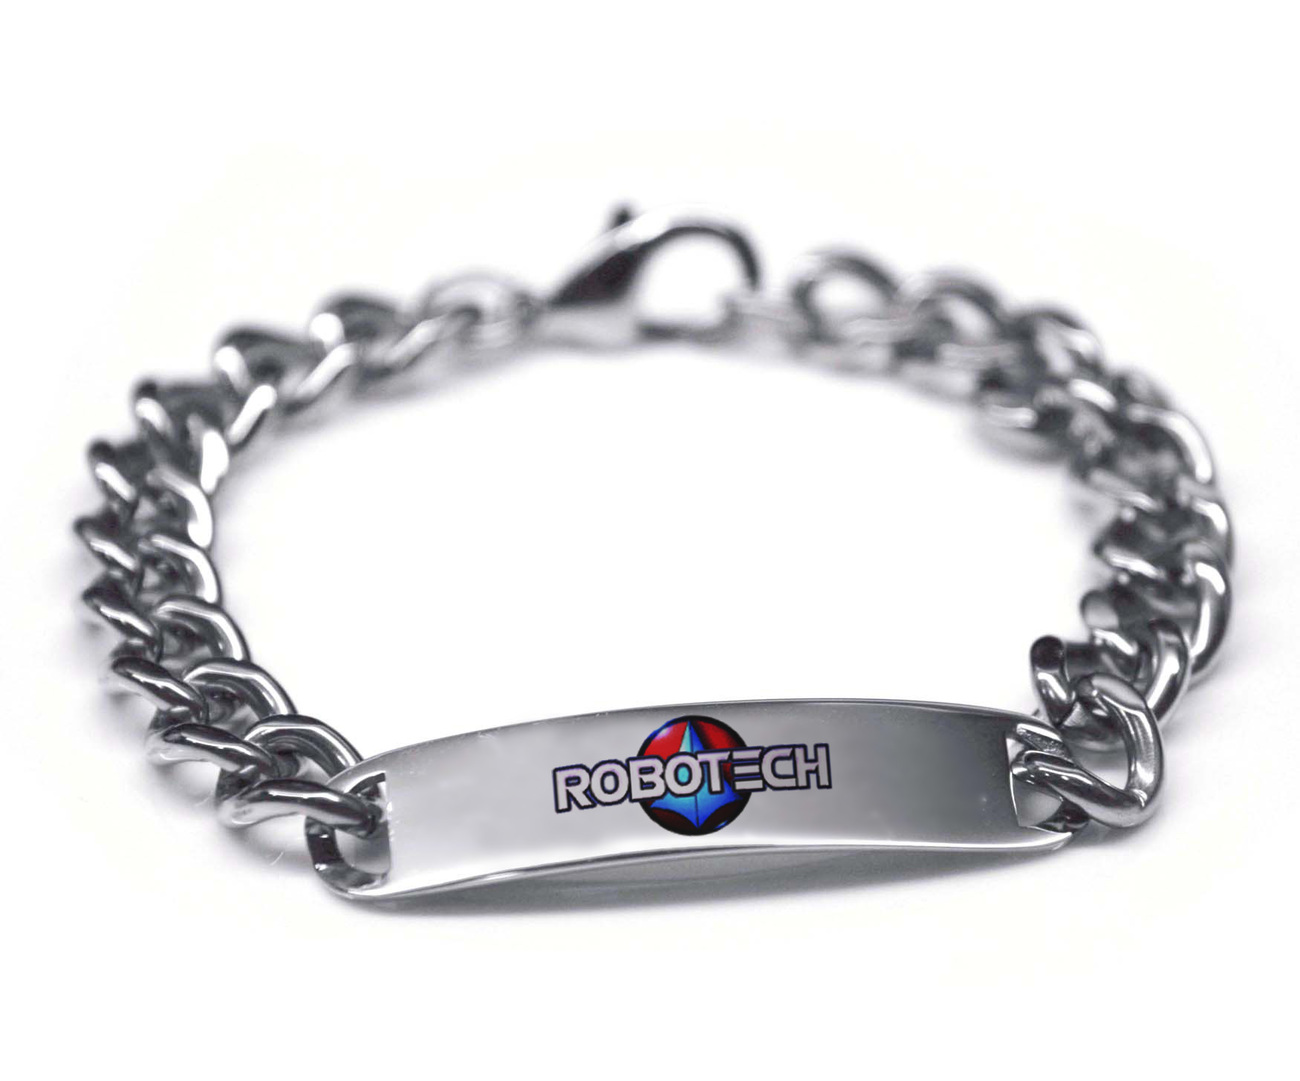 Robotech Macross Color Stainless Steel Bracelet